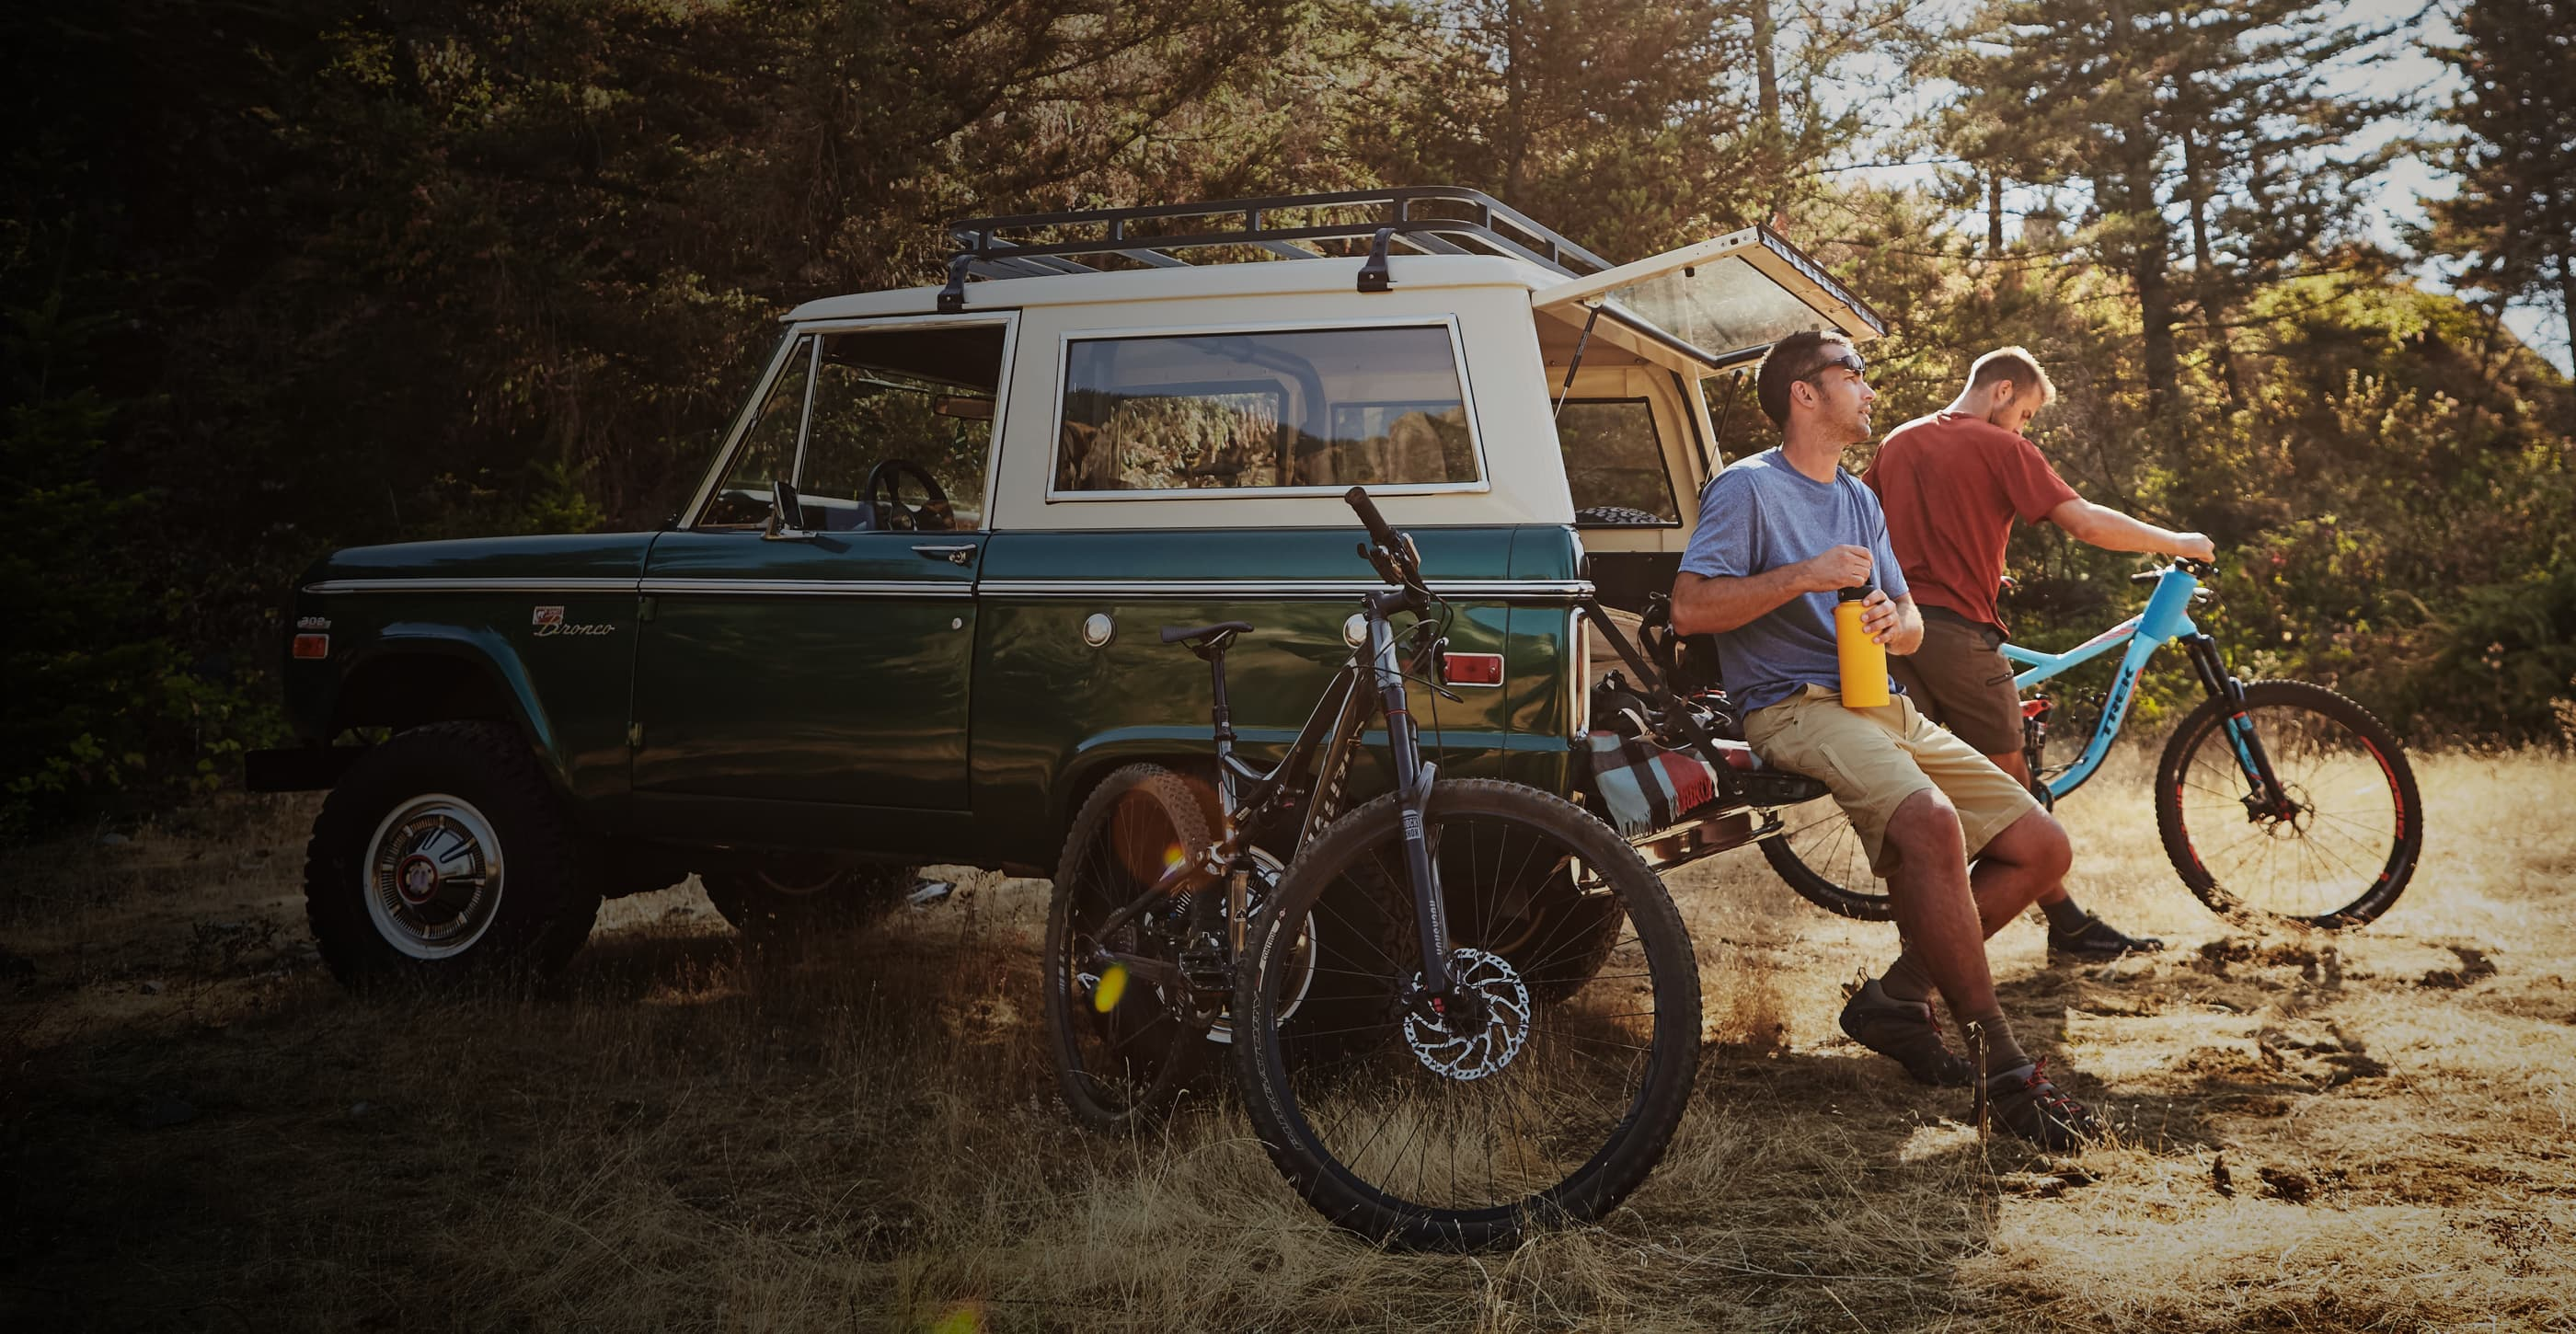 A biker with short brown hair and sunglasses sits on the tailgate of a green and white Ford Bronco opening a yellow water bottle, and another biker with short blond hair stands next to them inspecting a bright blue mountain bike. The vehicle is parked in a grassy field surrounded by trees and a black mountain bike leans against its side.